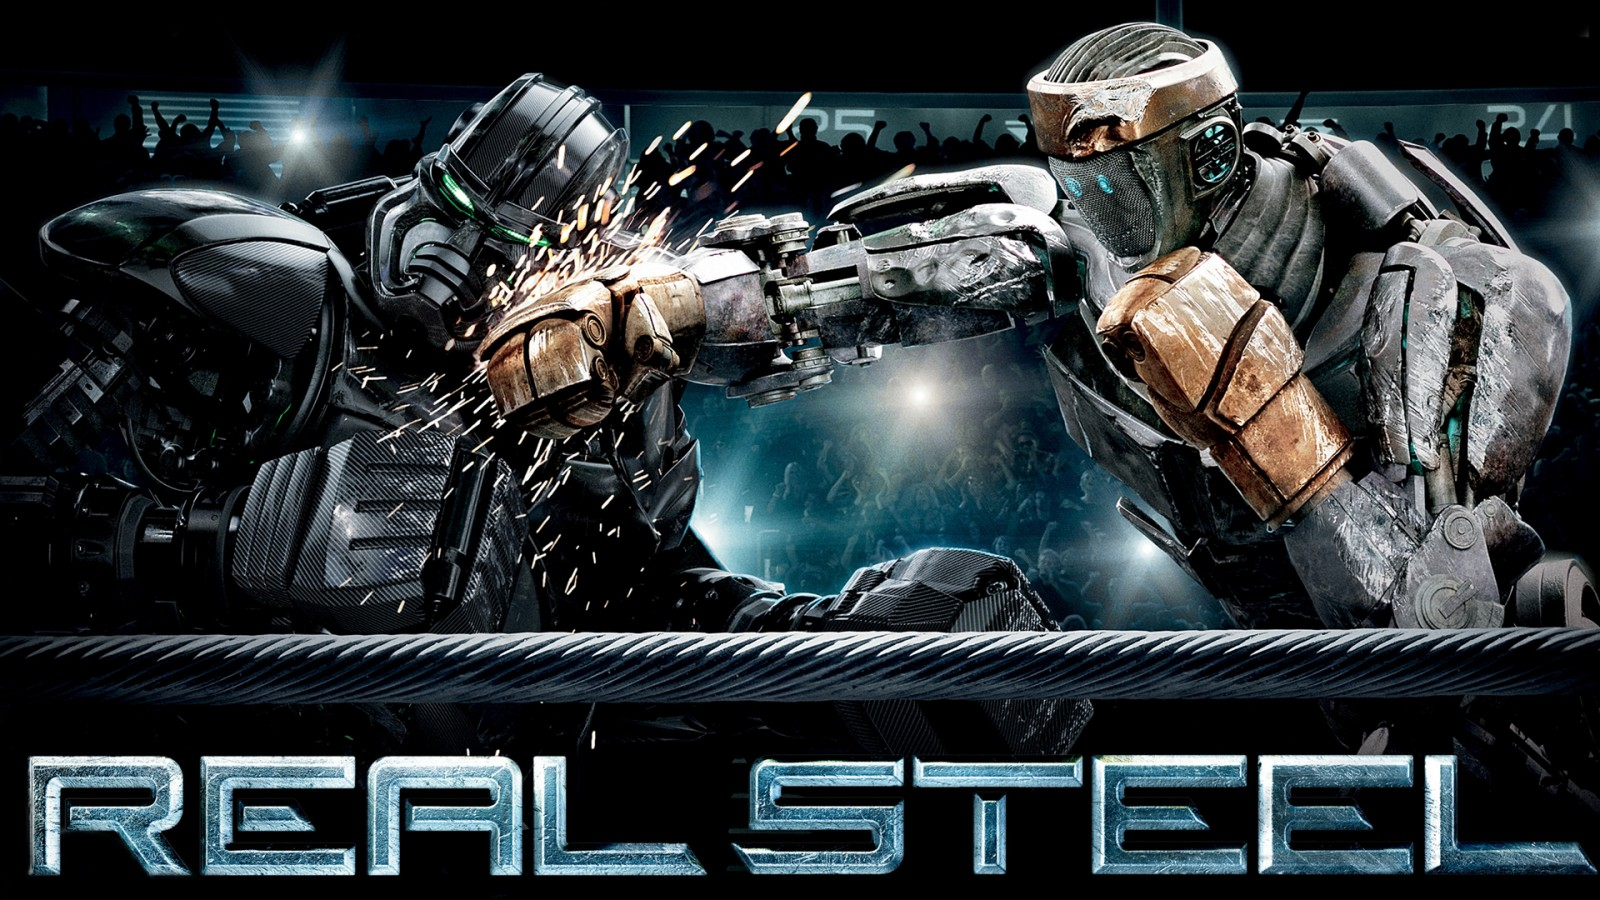 Apple Iphone X Wallpaper Hd Real Steel Battle Wallpapers Hd Wallpapers Id 10393